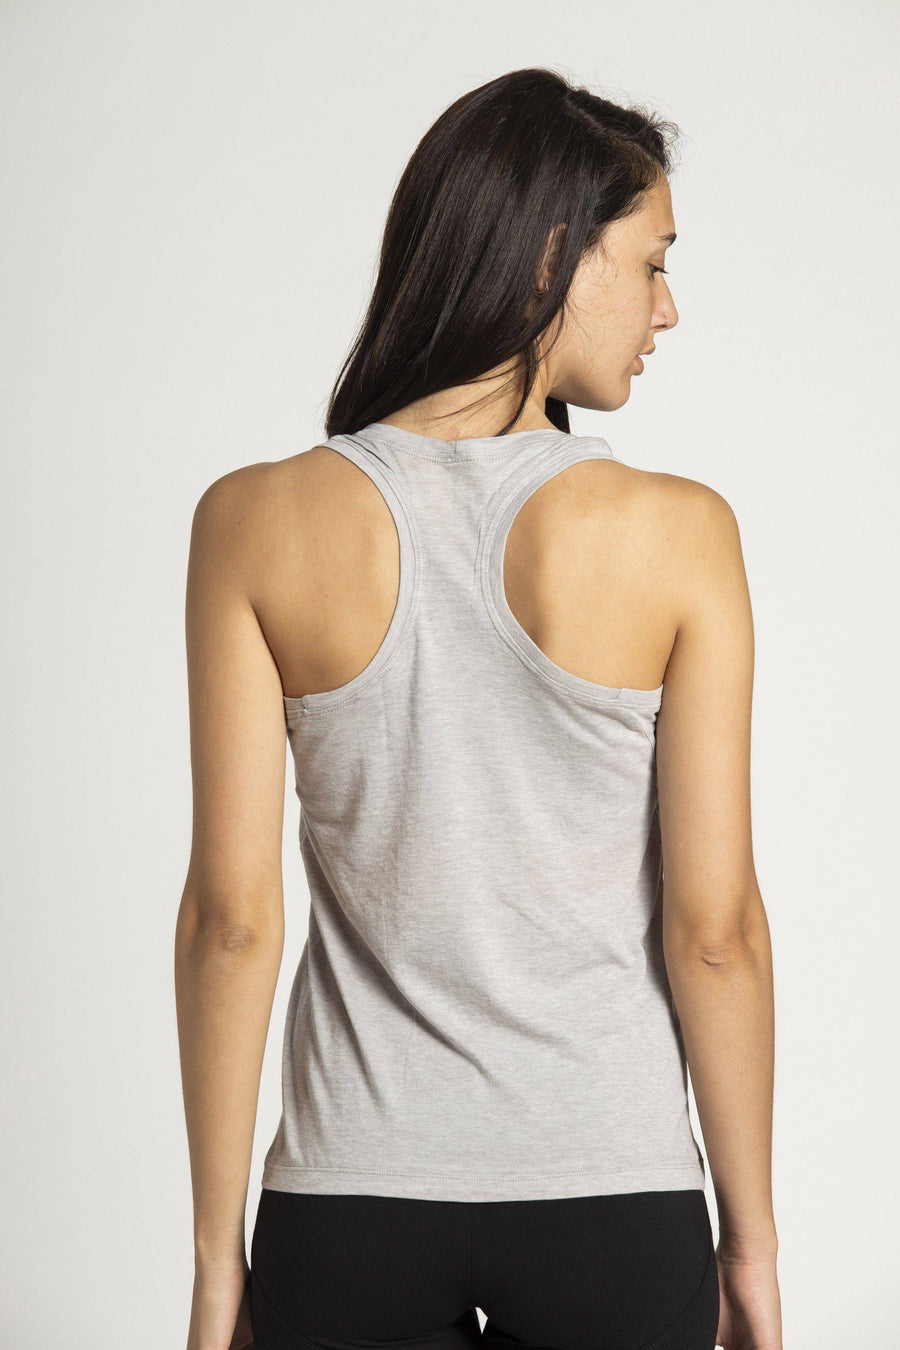 OUTLET Cotton Tissue Racer Back Tank Top womens clothing rippleyogawear